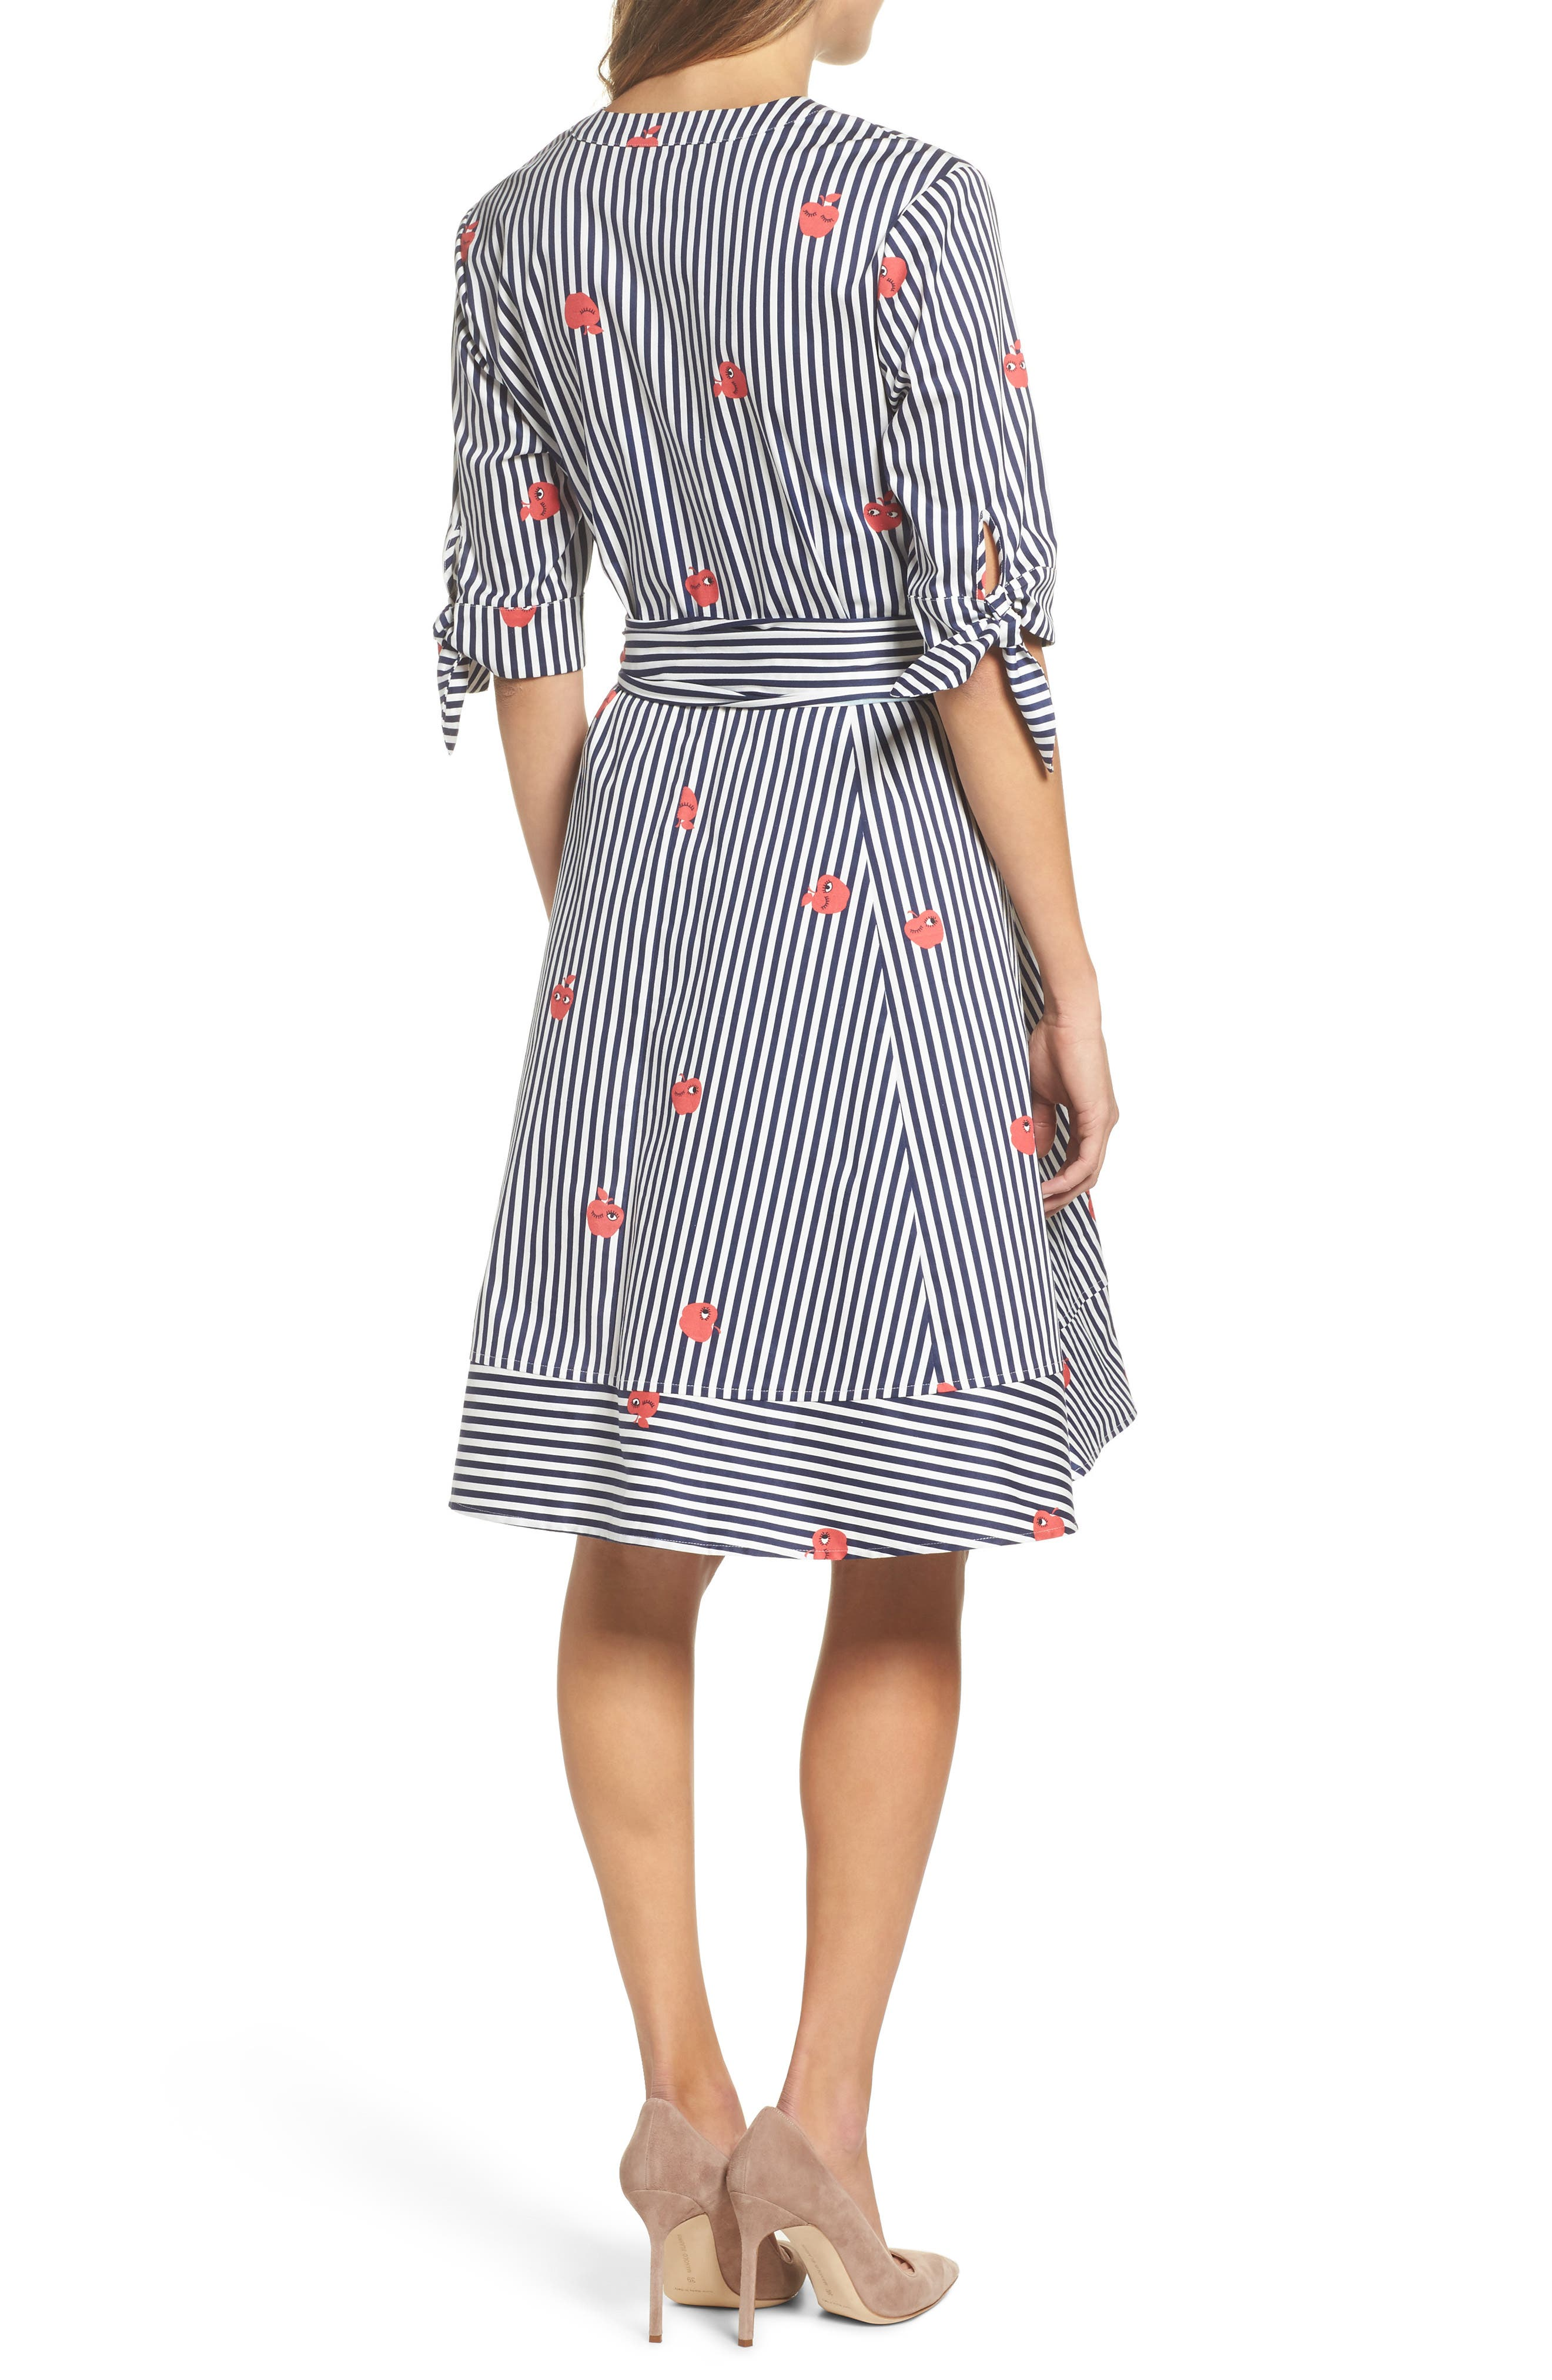 Bella Tie Front Fit & Flare Shirtdress,                             Alternate thumbnail 2, color,                             Navy/ White Stripe